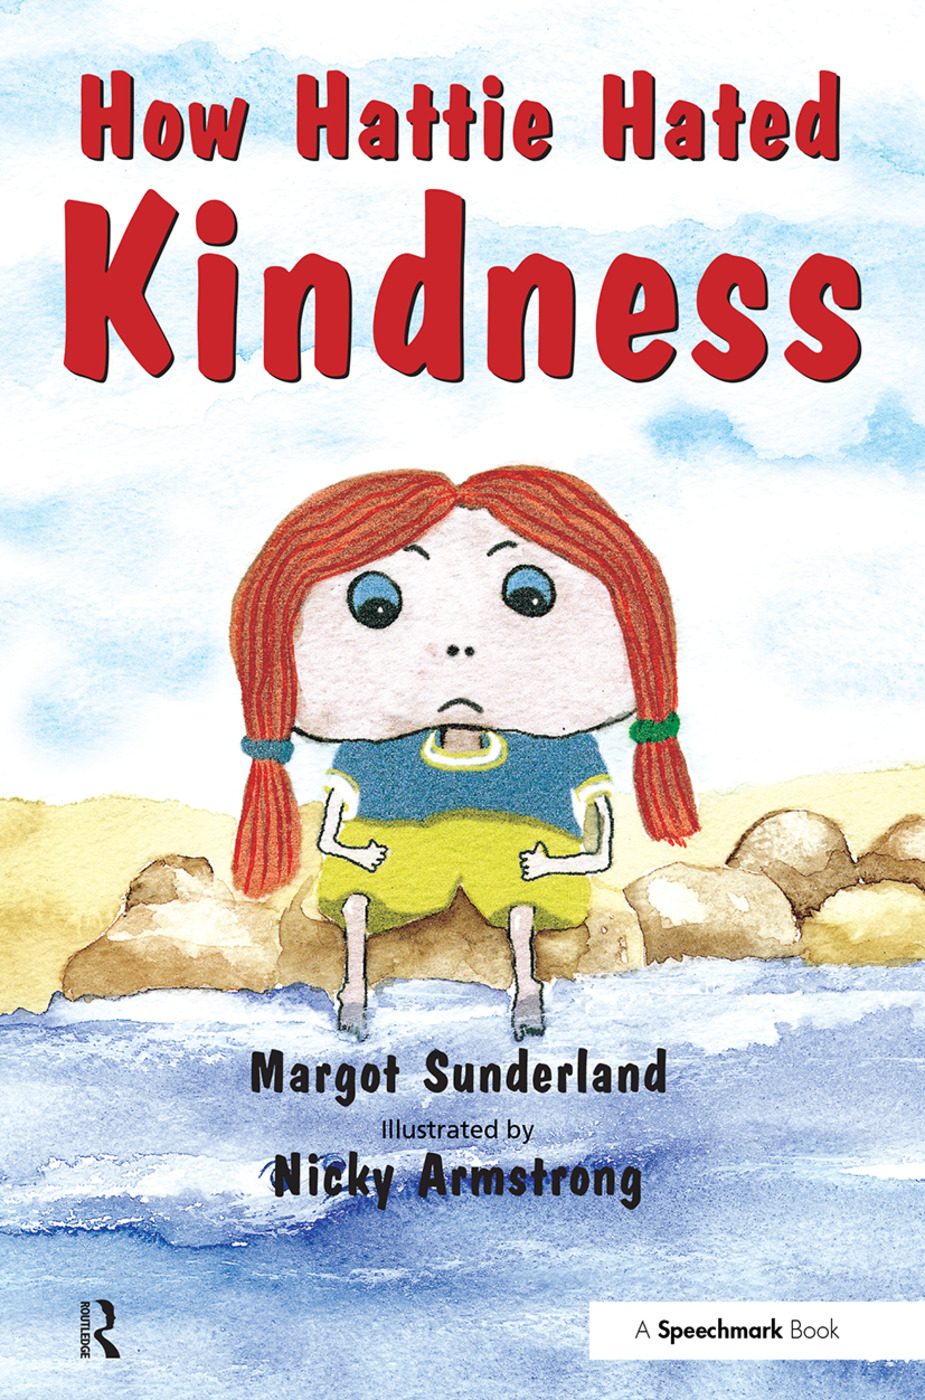 How Hattie Hated Kindness: A Story for Children Locked in Rage of Hate book cover